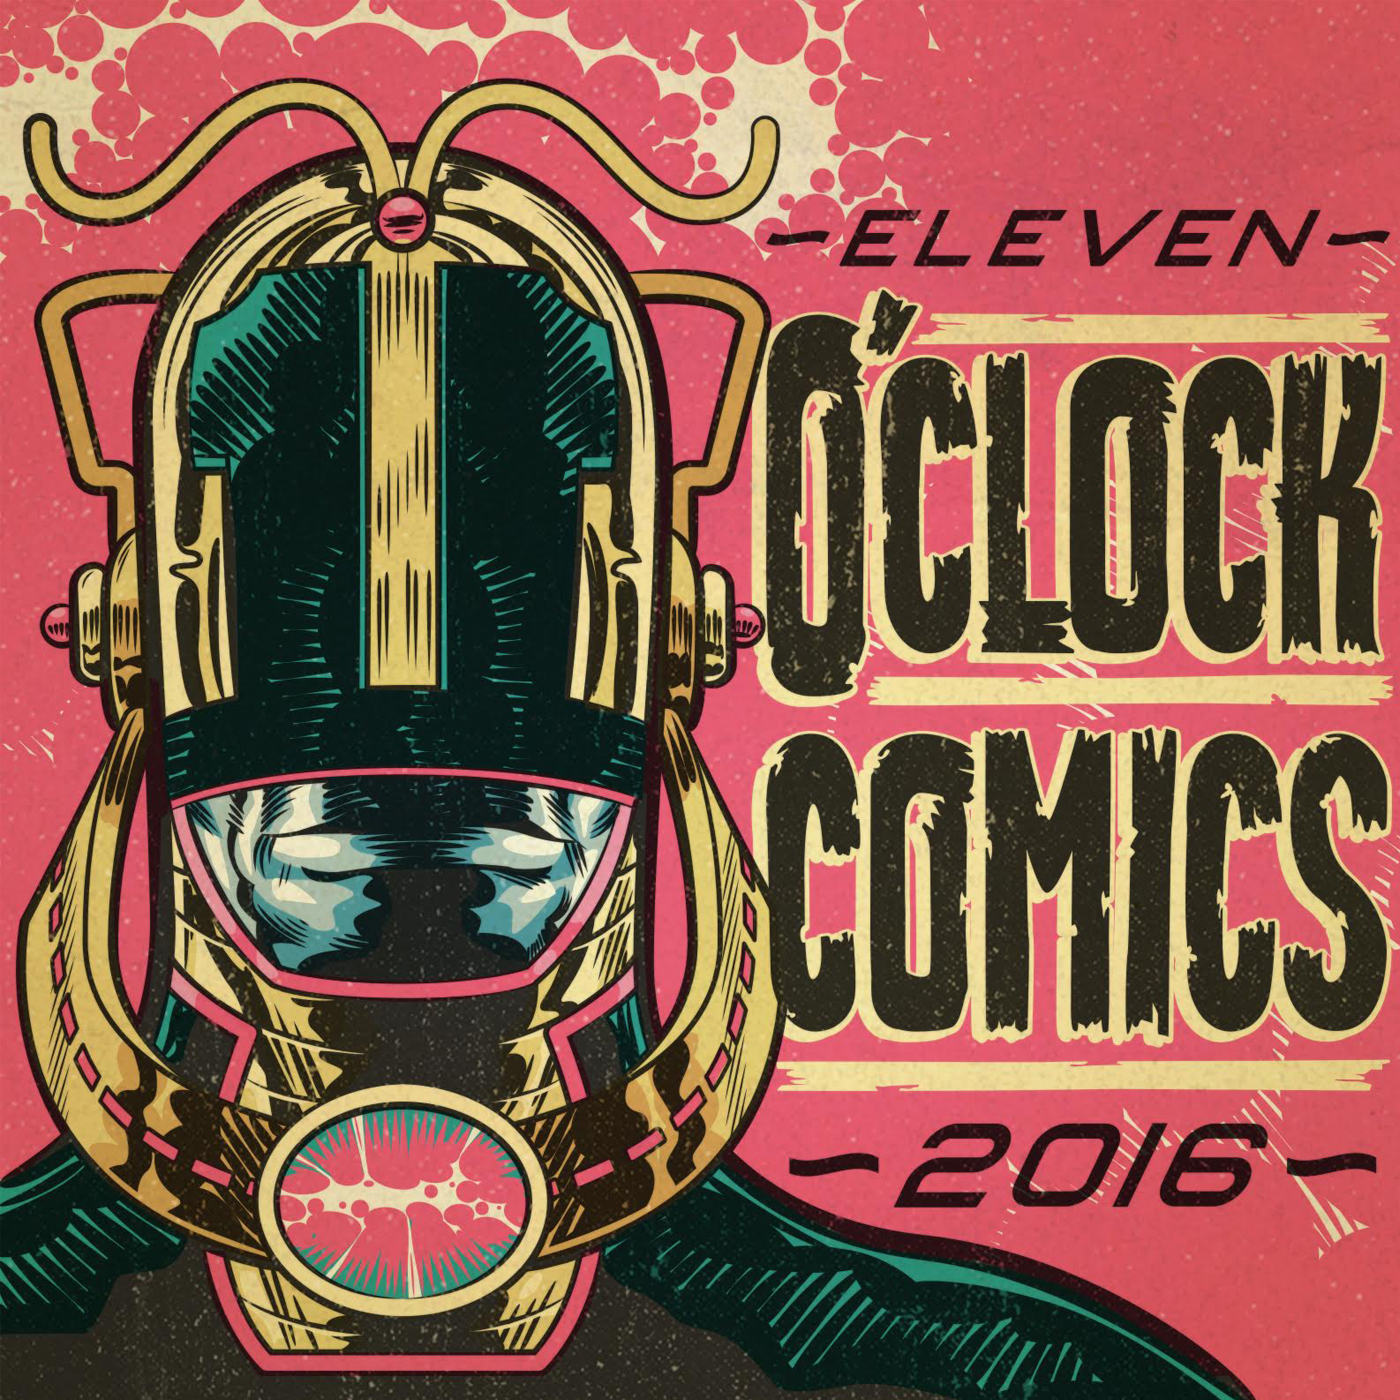 11 O'Clock Comics Episode 446